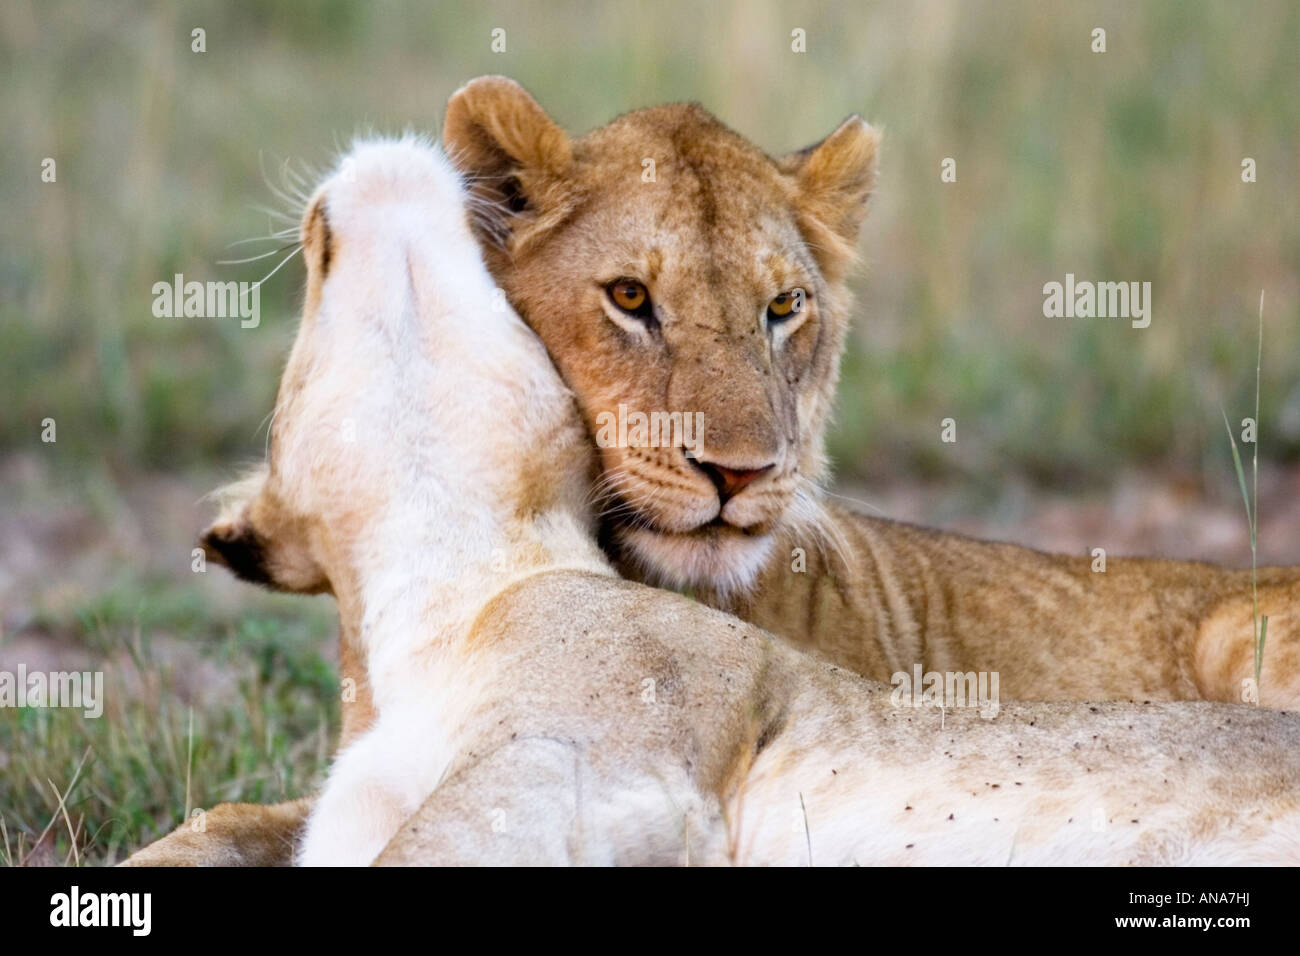 Two sub-adult male lions express their affection for each other, part of the bonding process - Stock Image